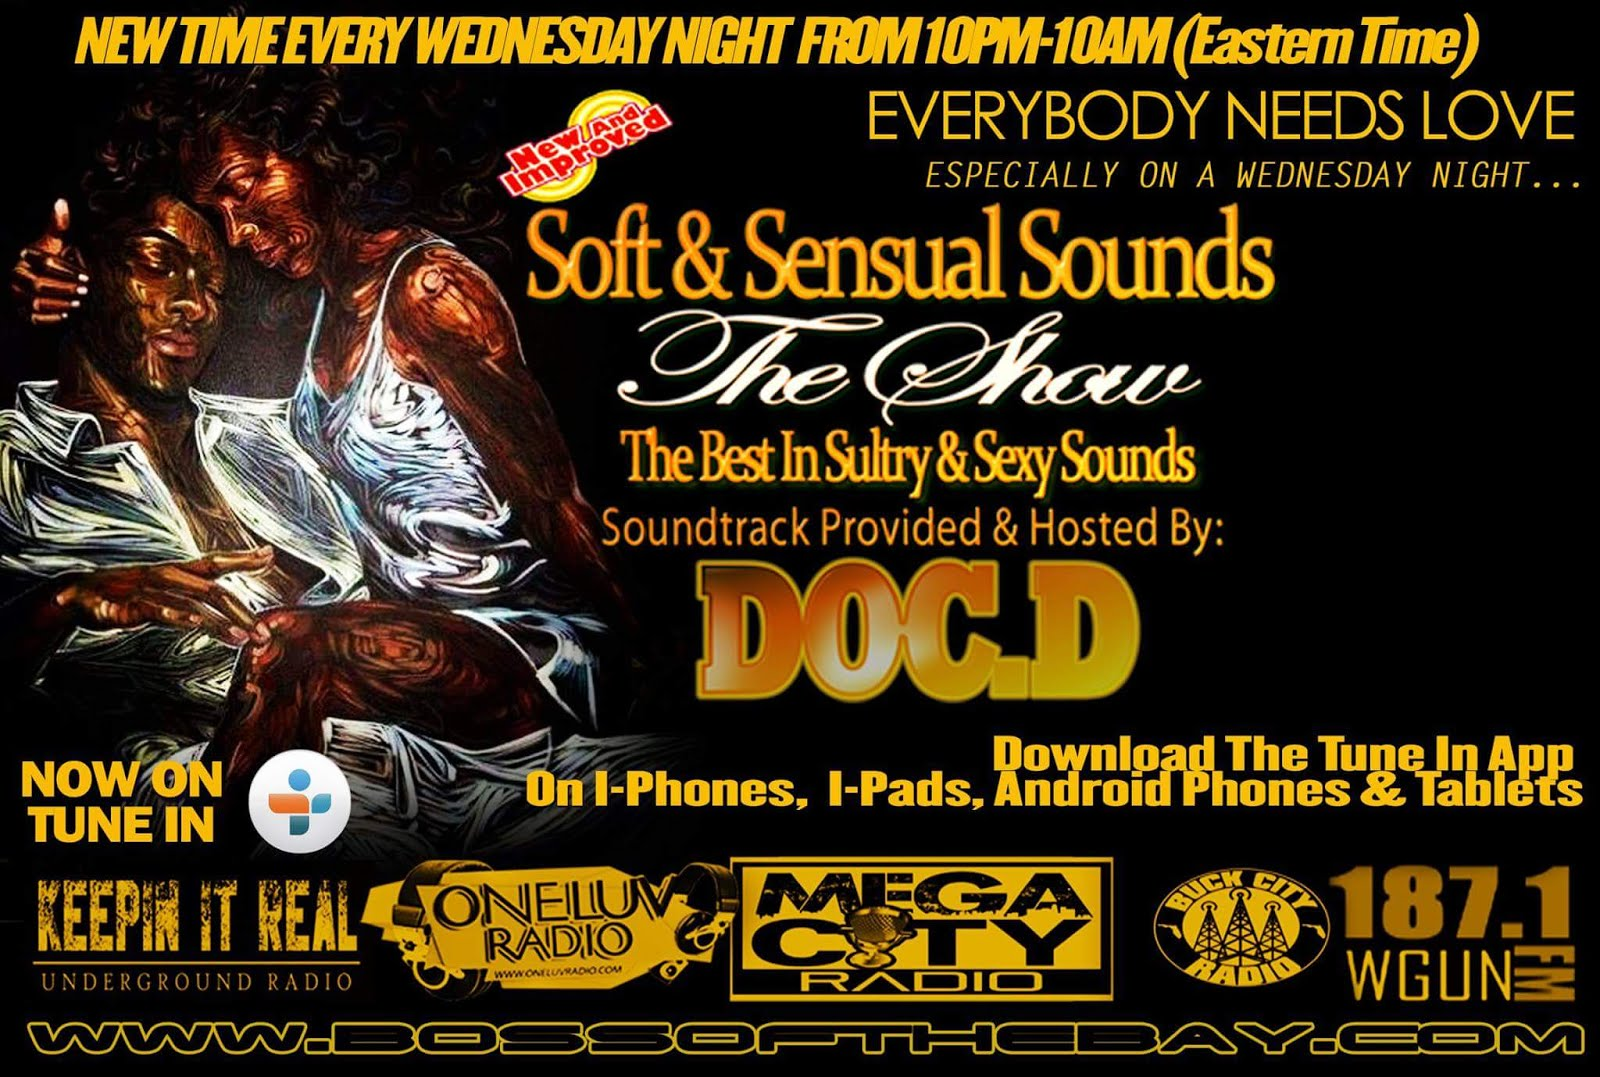 DOC D SOFT & SENSUAL SOUNDS